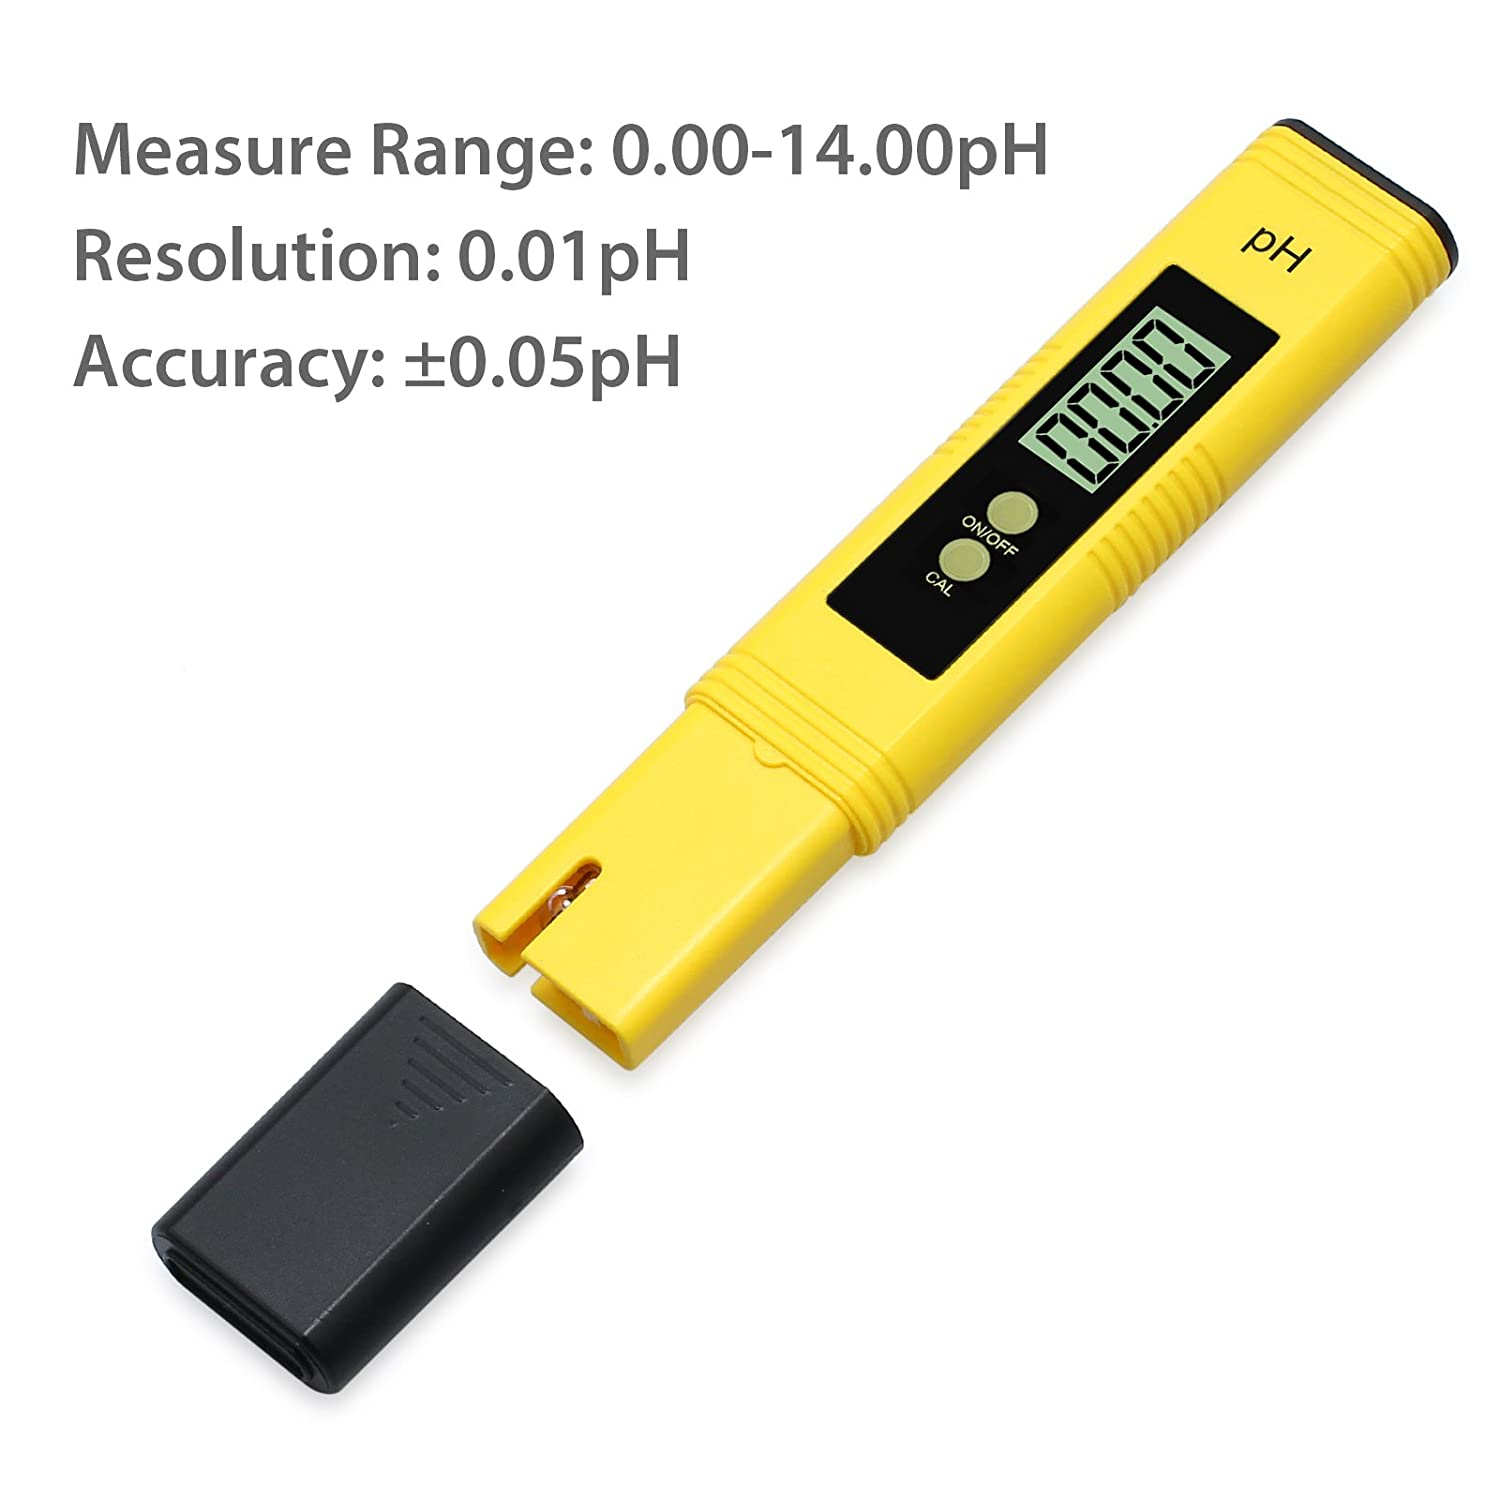 PH Meter Justech High Accuracy Pen Type Water Quality Tester Portable Digital Water Test Meter for Drinking Water Aquariums Fish Tank Pool Pond